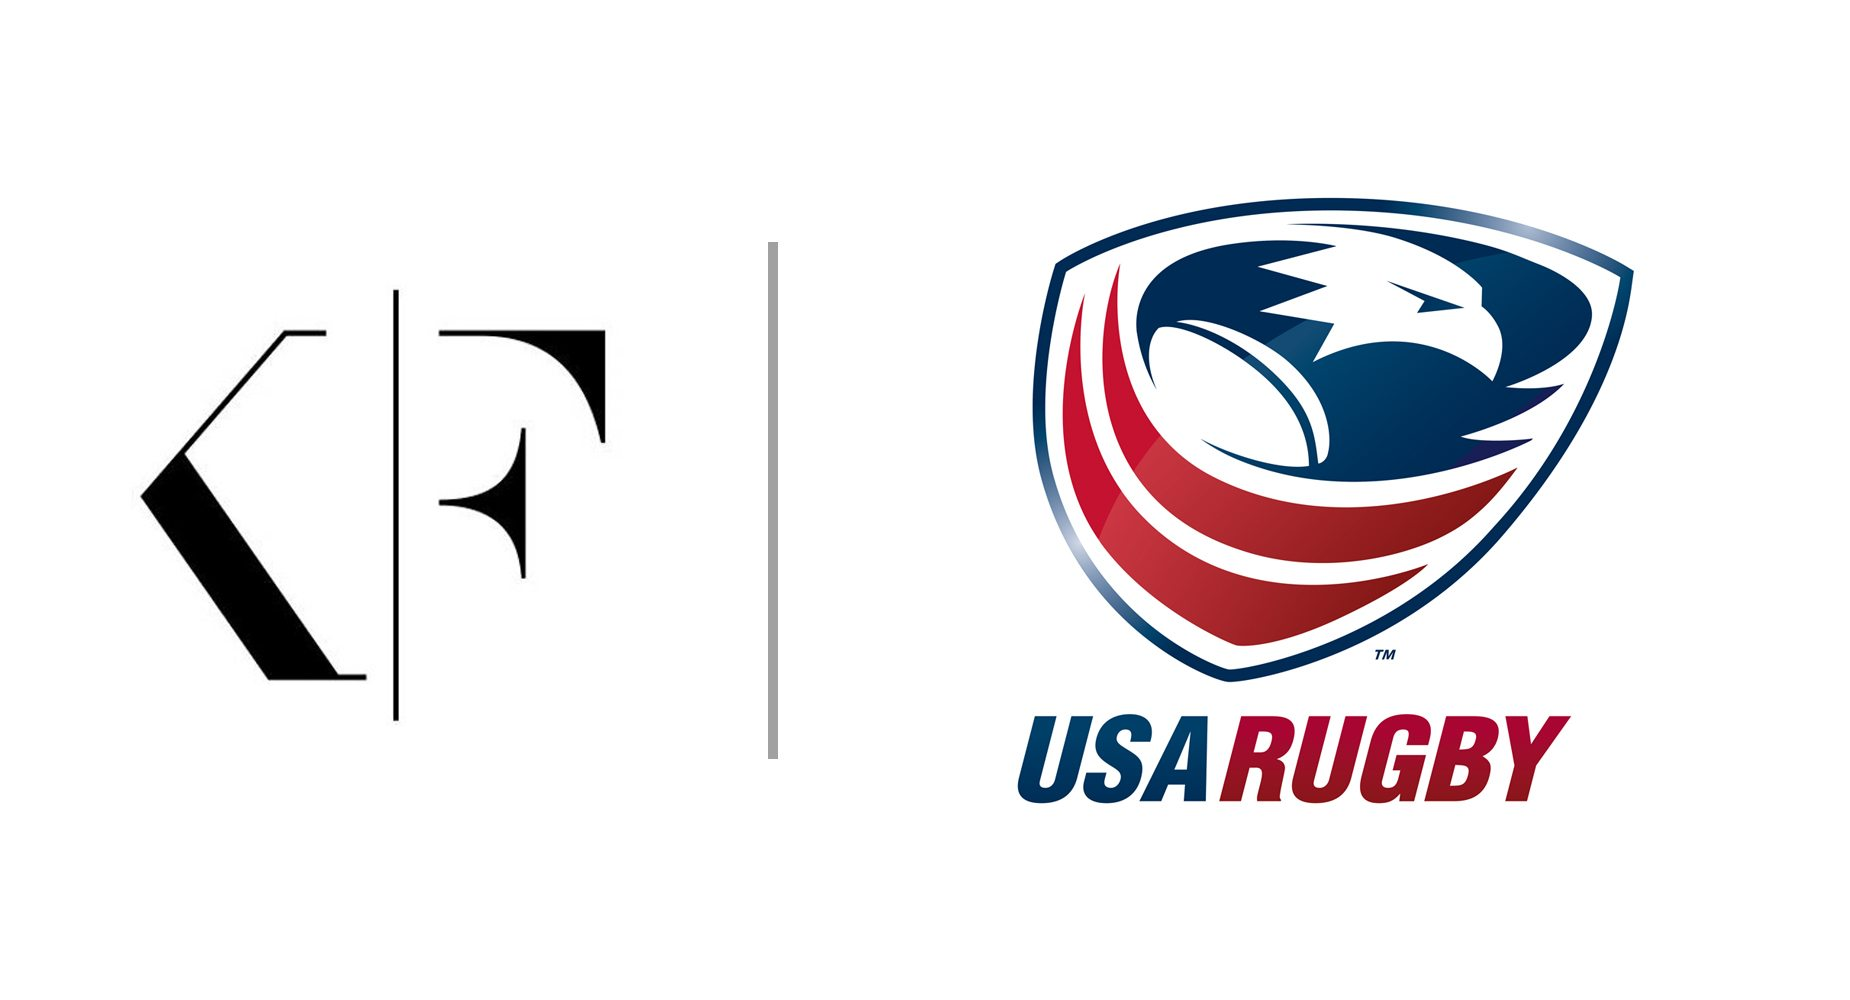 USA Rugby to hire Korn Ferry for final stages of CEO search